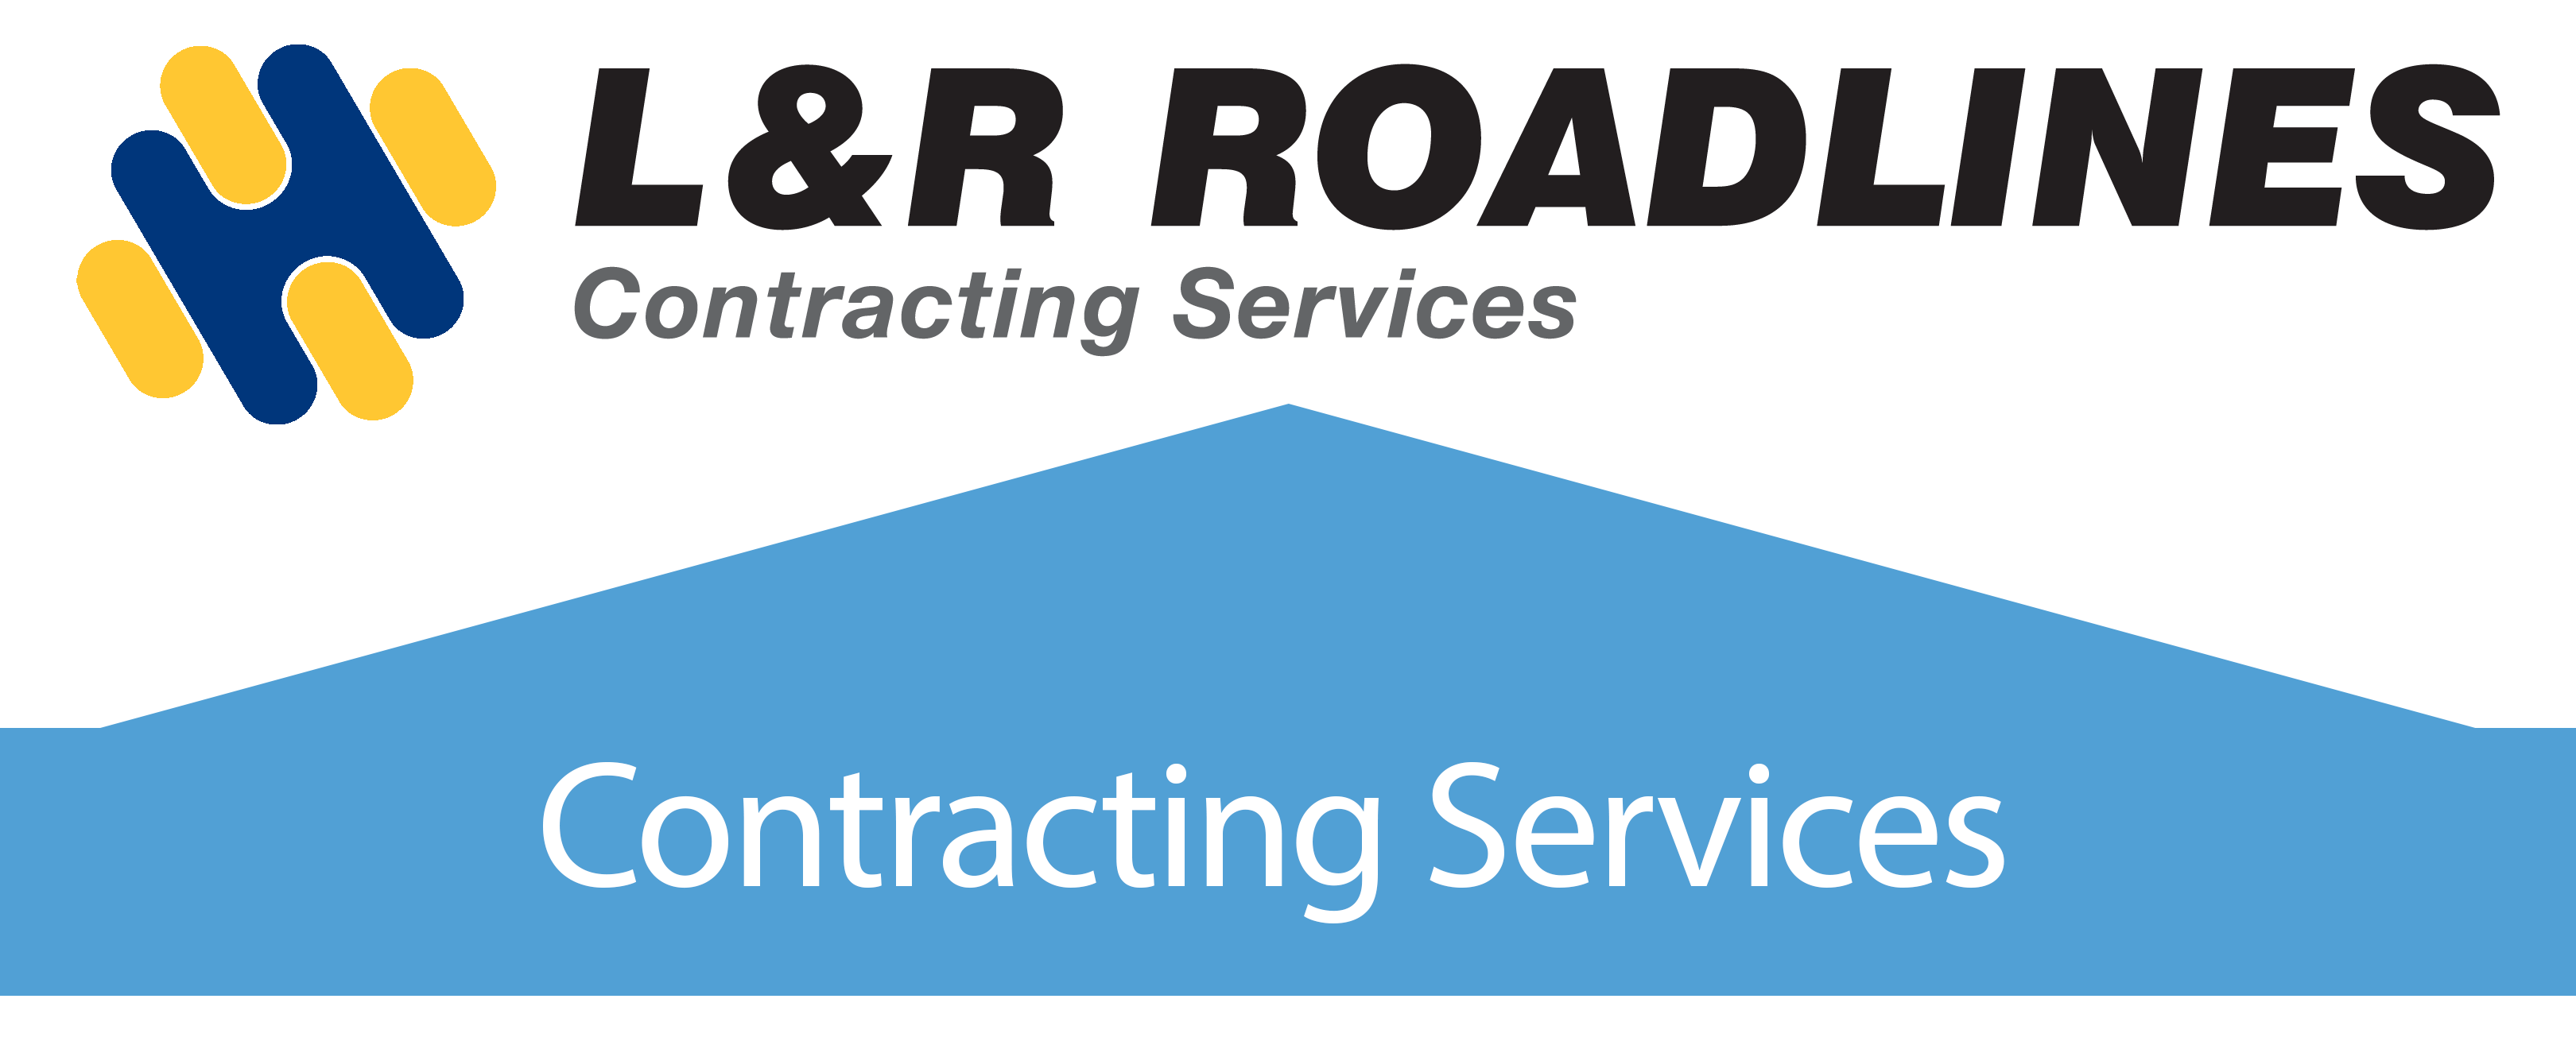 Contracting Services & Road Safety Solutions